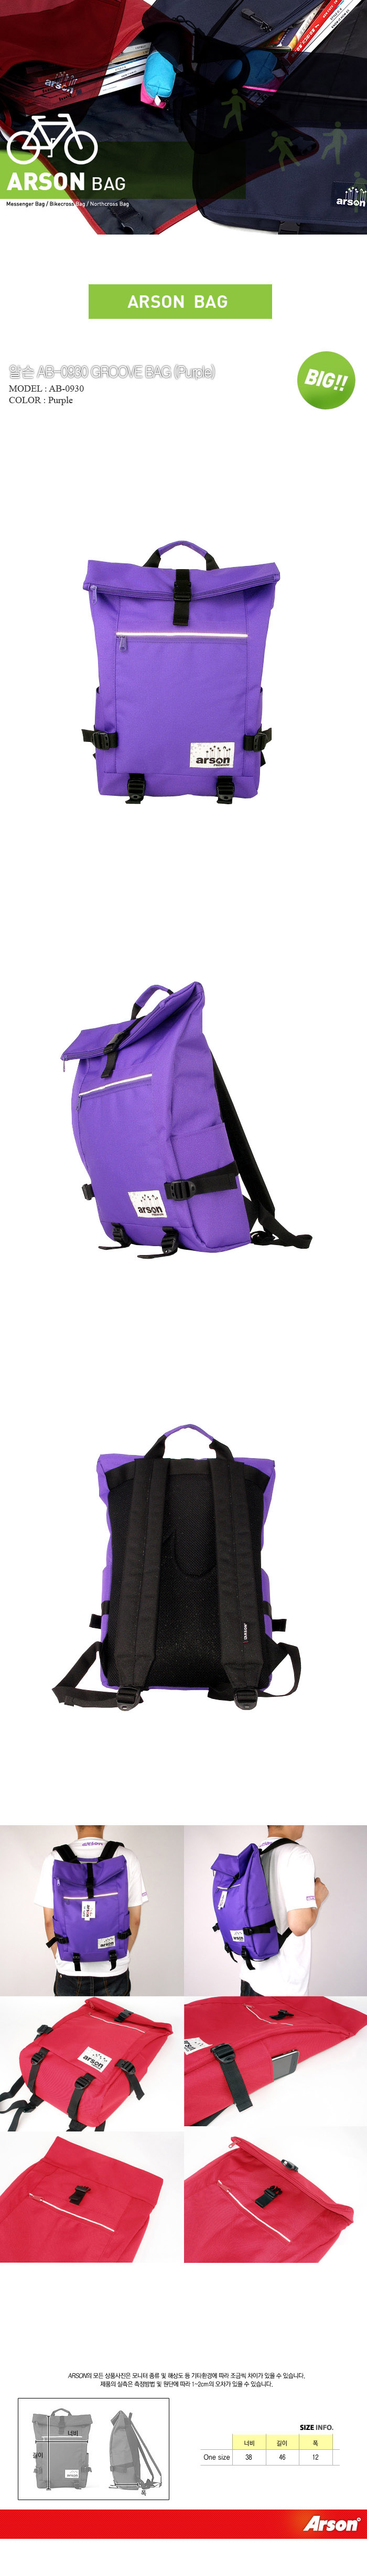 [ ARSON ] AB-0930 (Purple)/Backpack School Bag